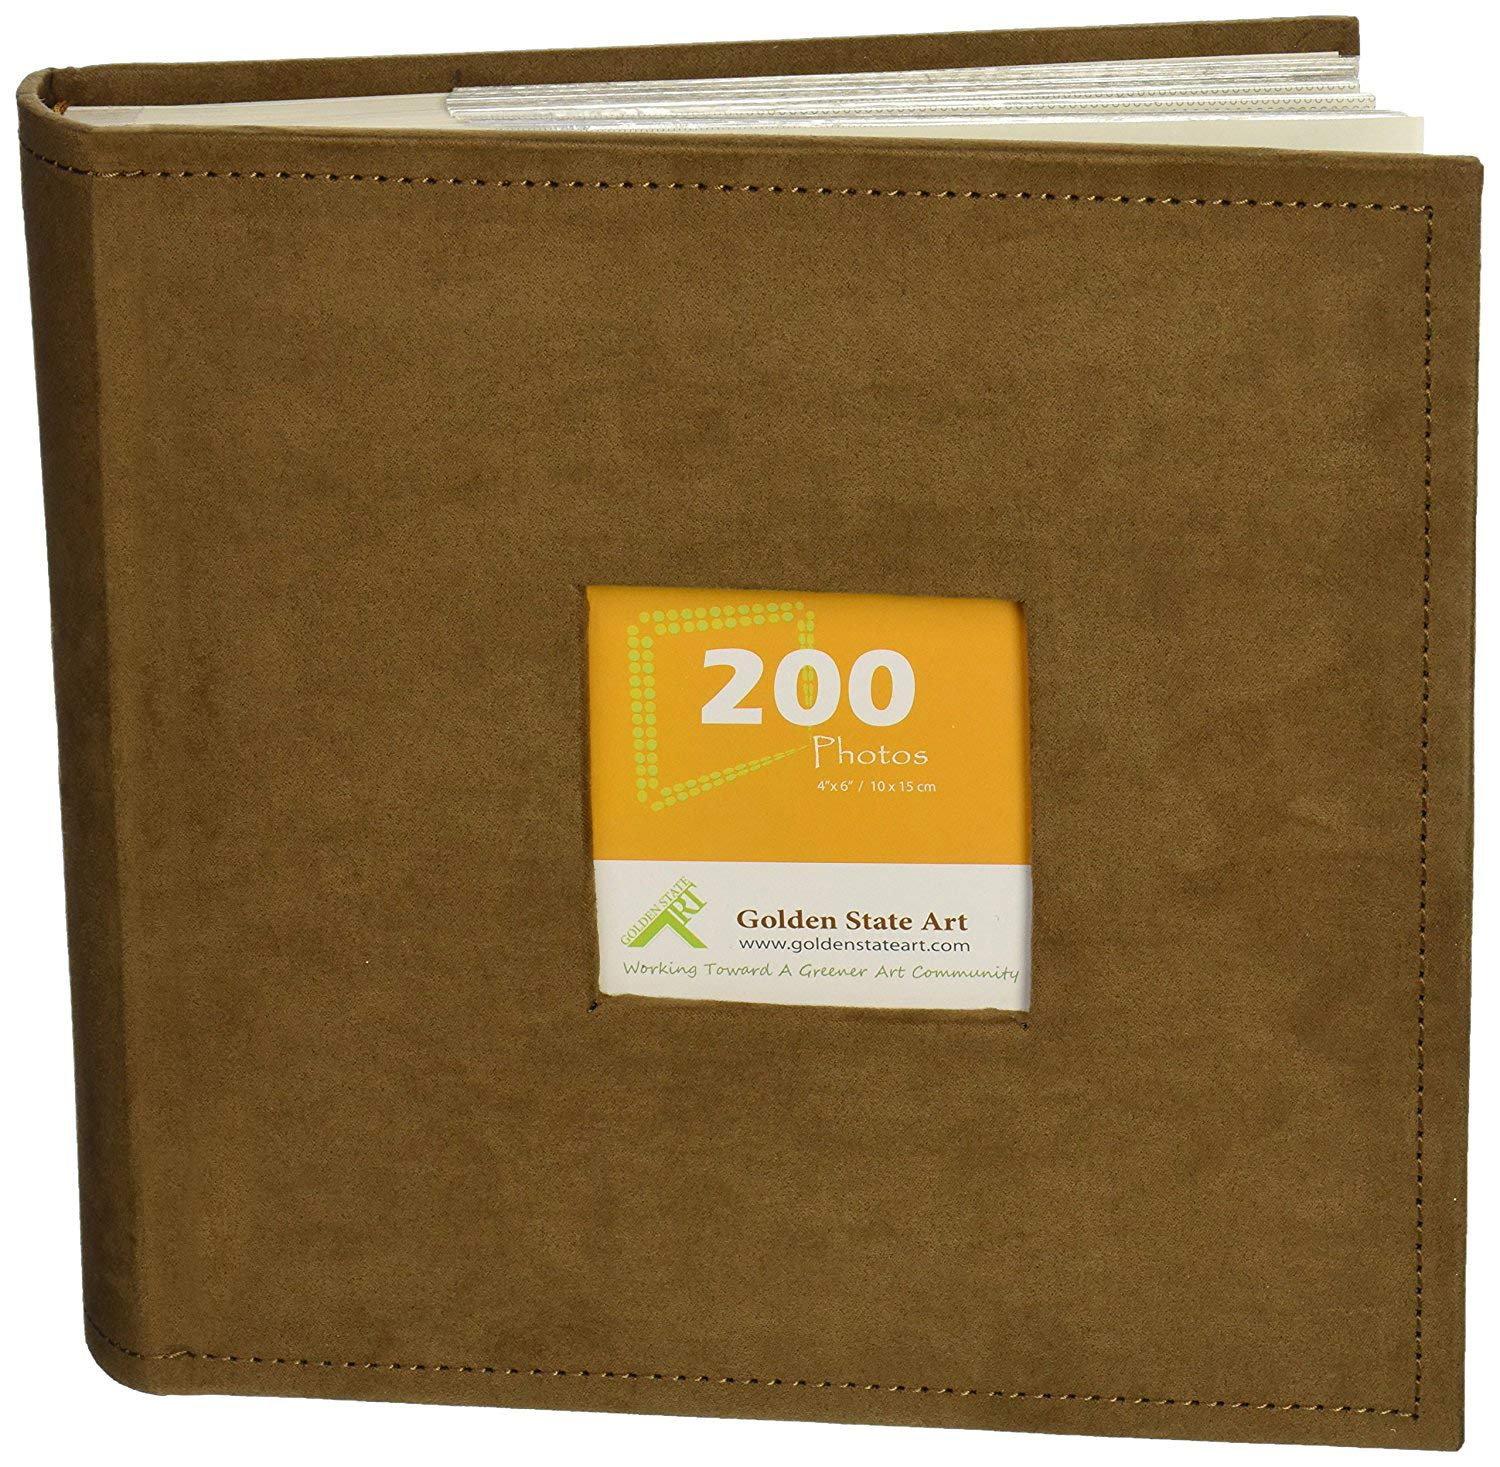 Golden State Art Photo Album, Holds 200 4''x6'' Pictures, 2 per Page, Suede Cover, Brown